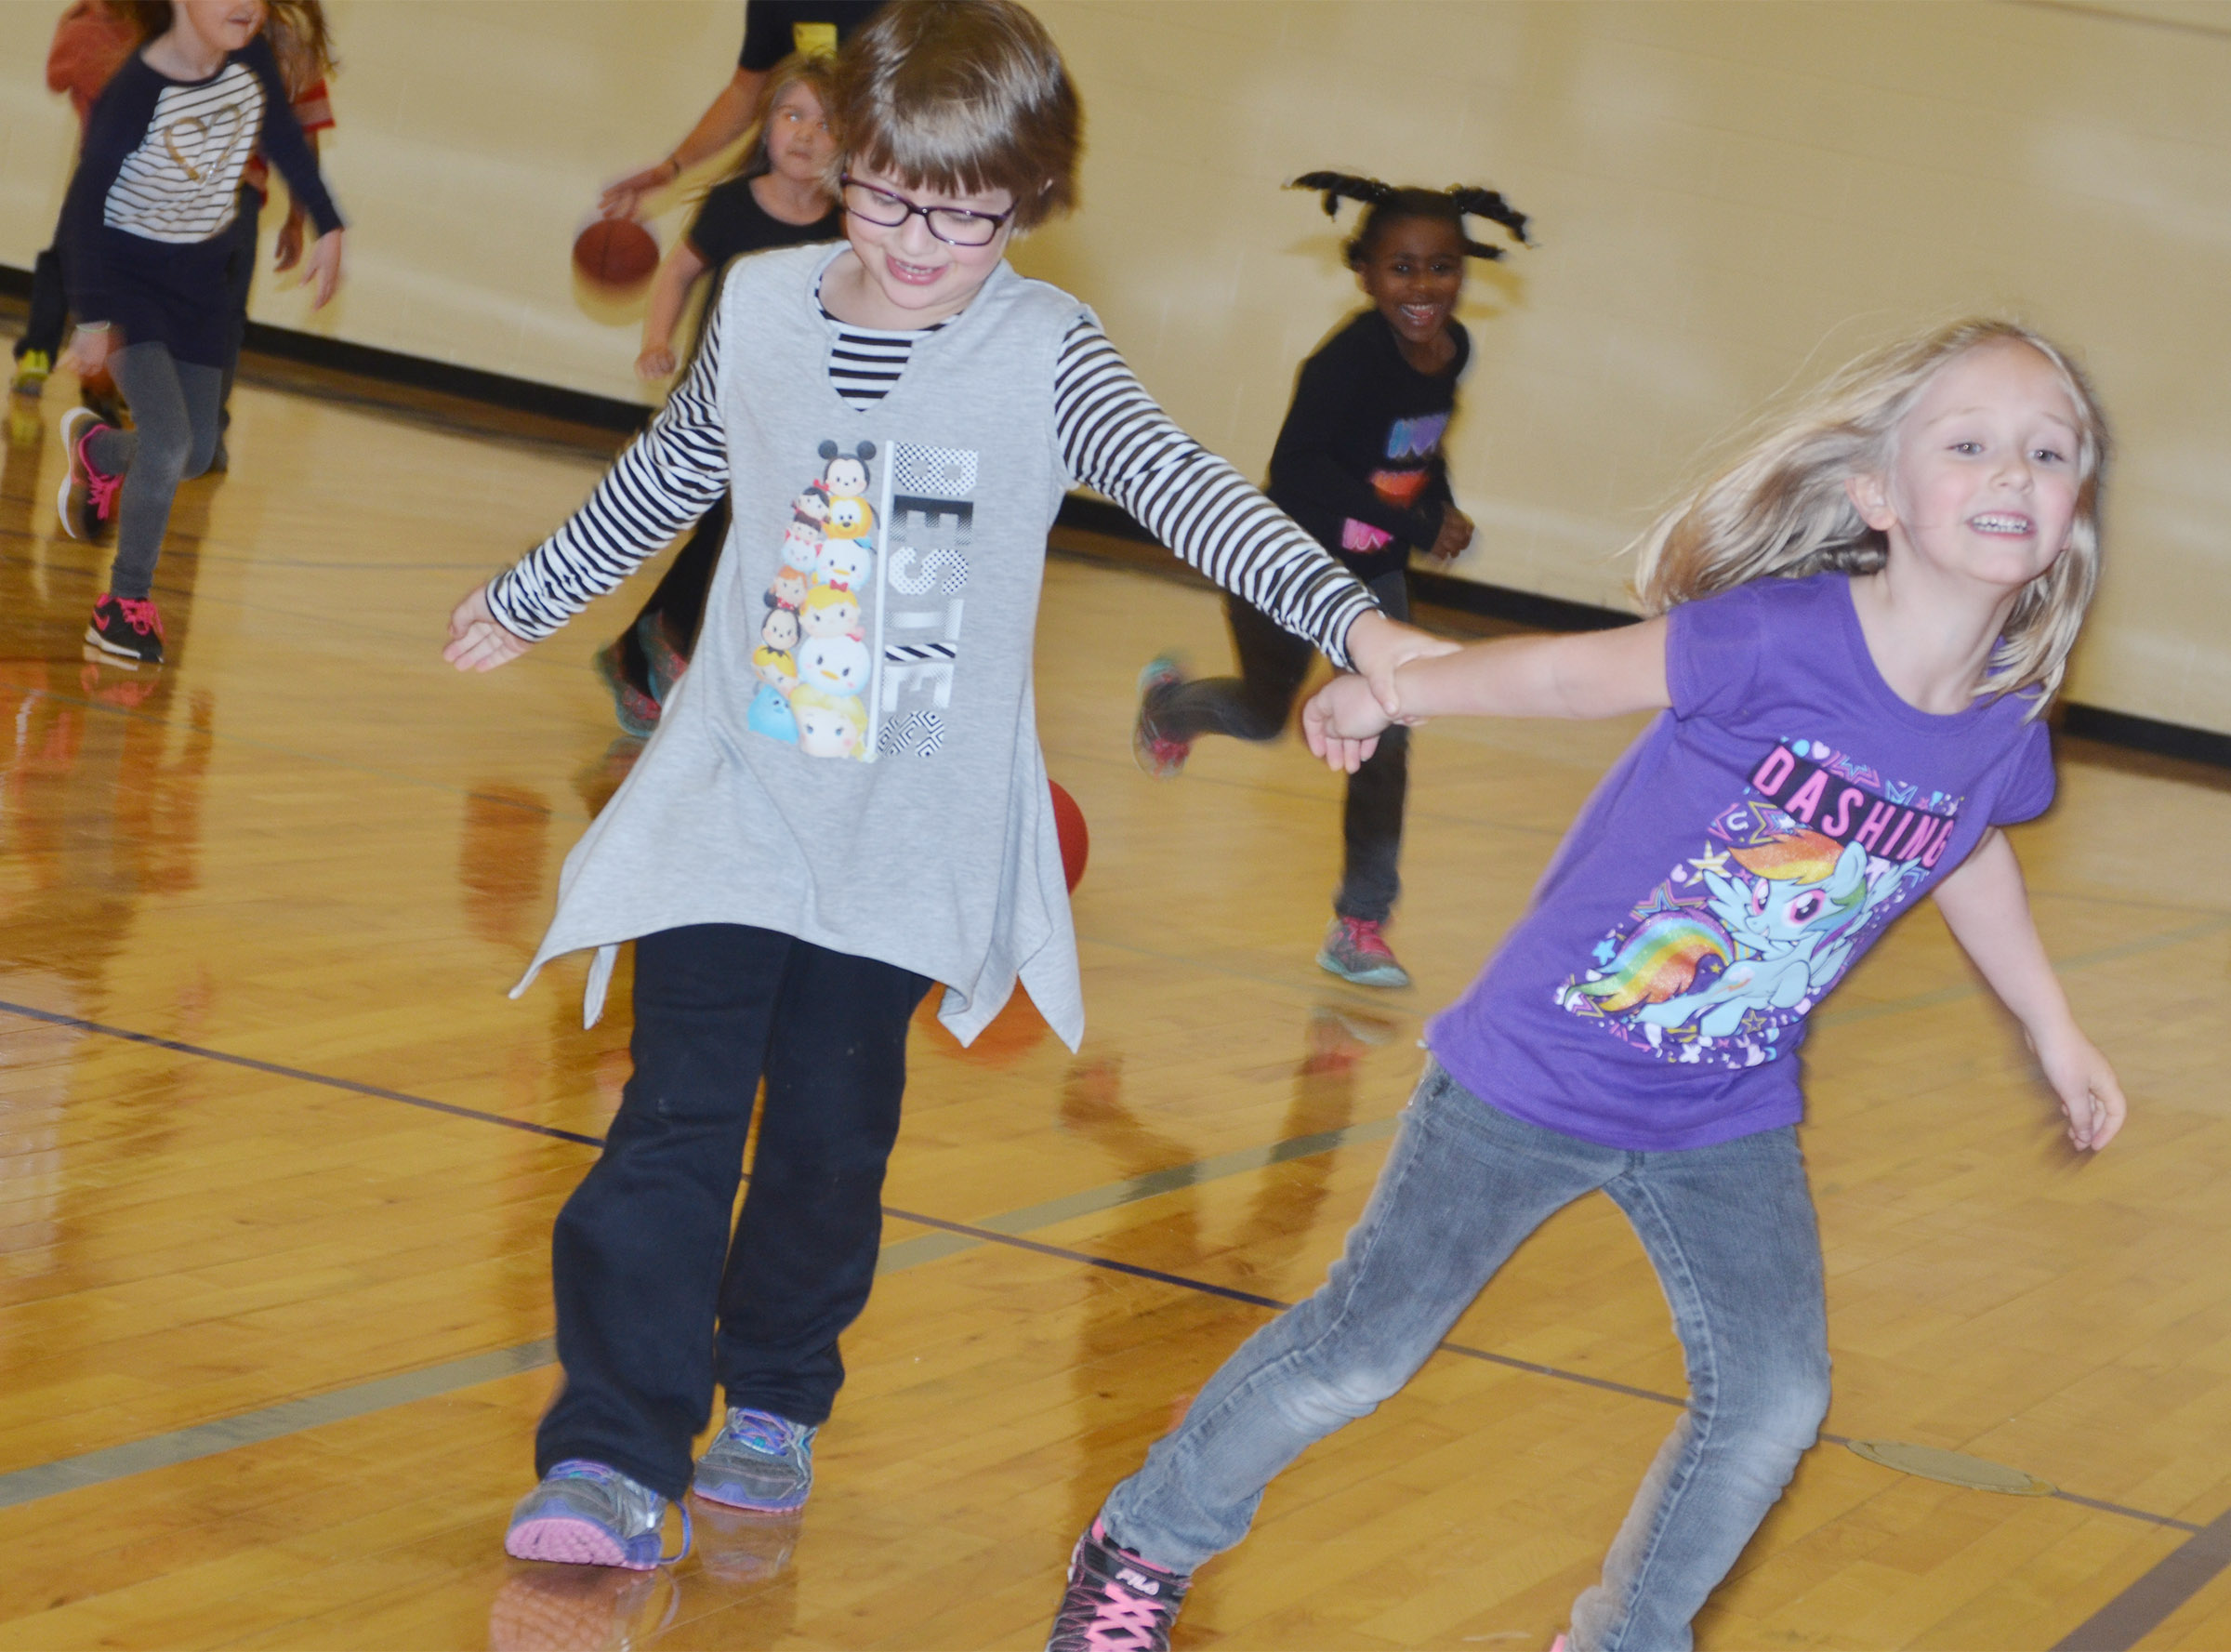 CES first-grader Addelyn Dooley, at left, and kindergartener LeeAnna Garvin run in the gym.